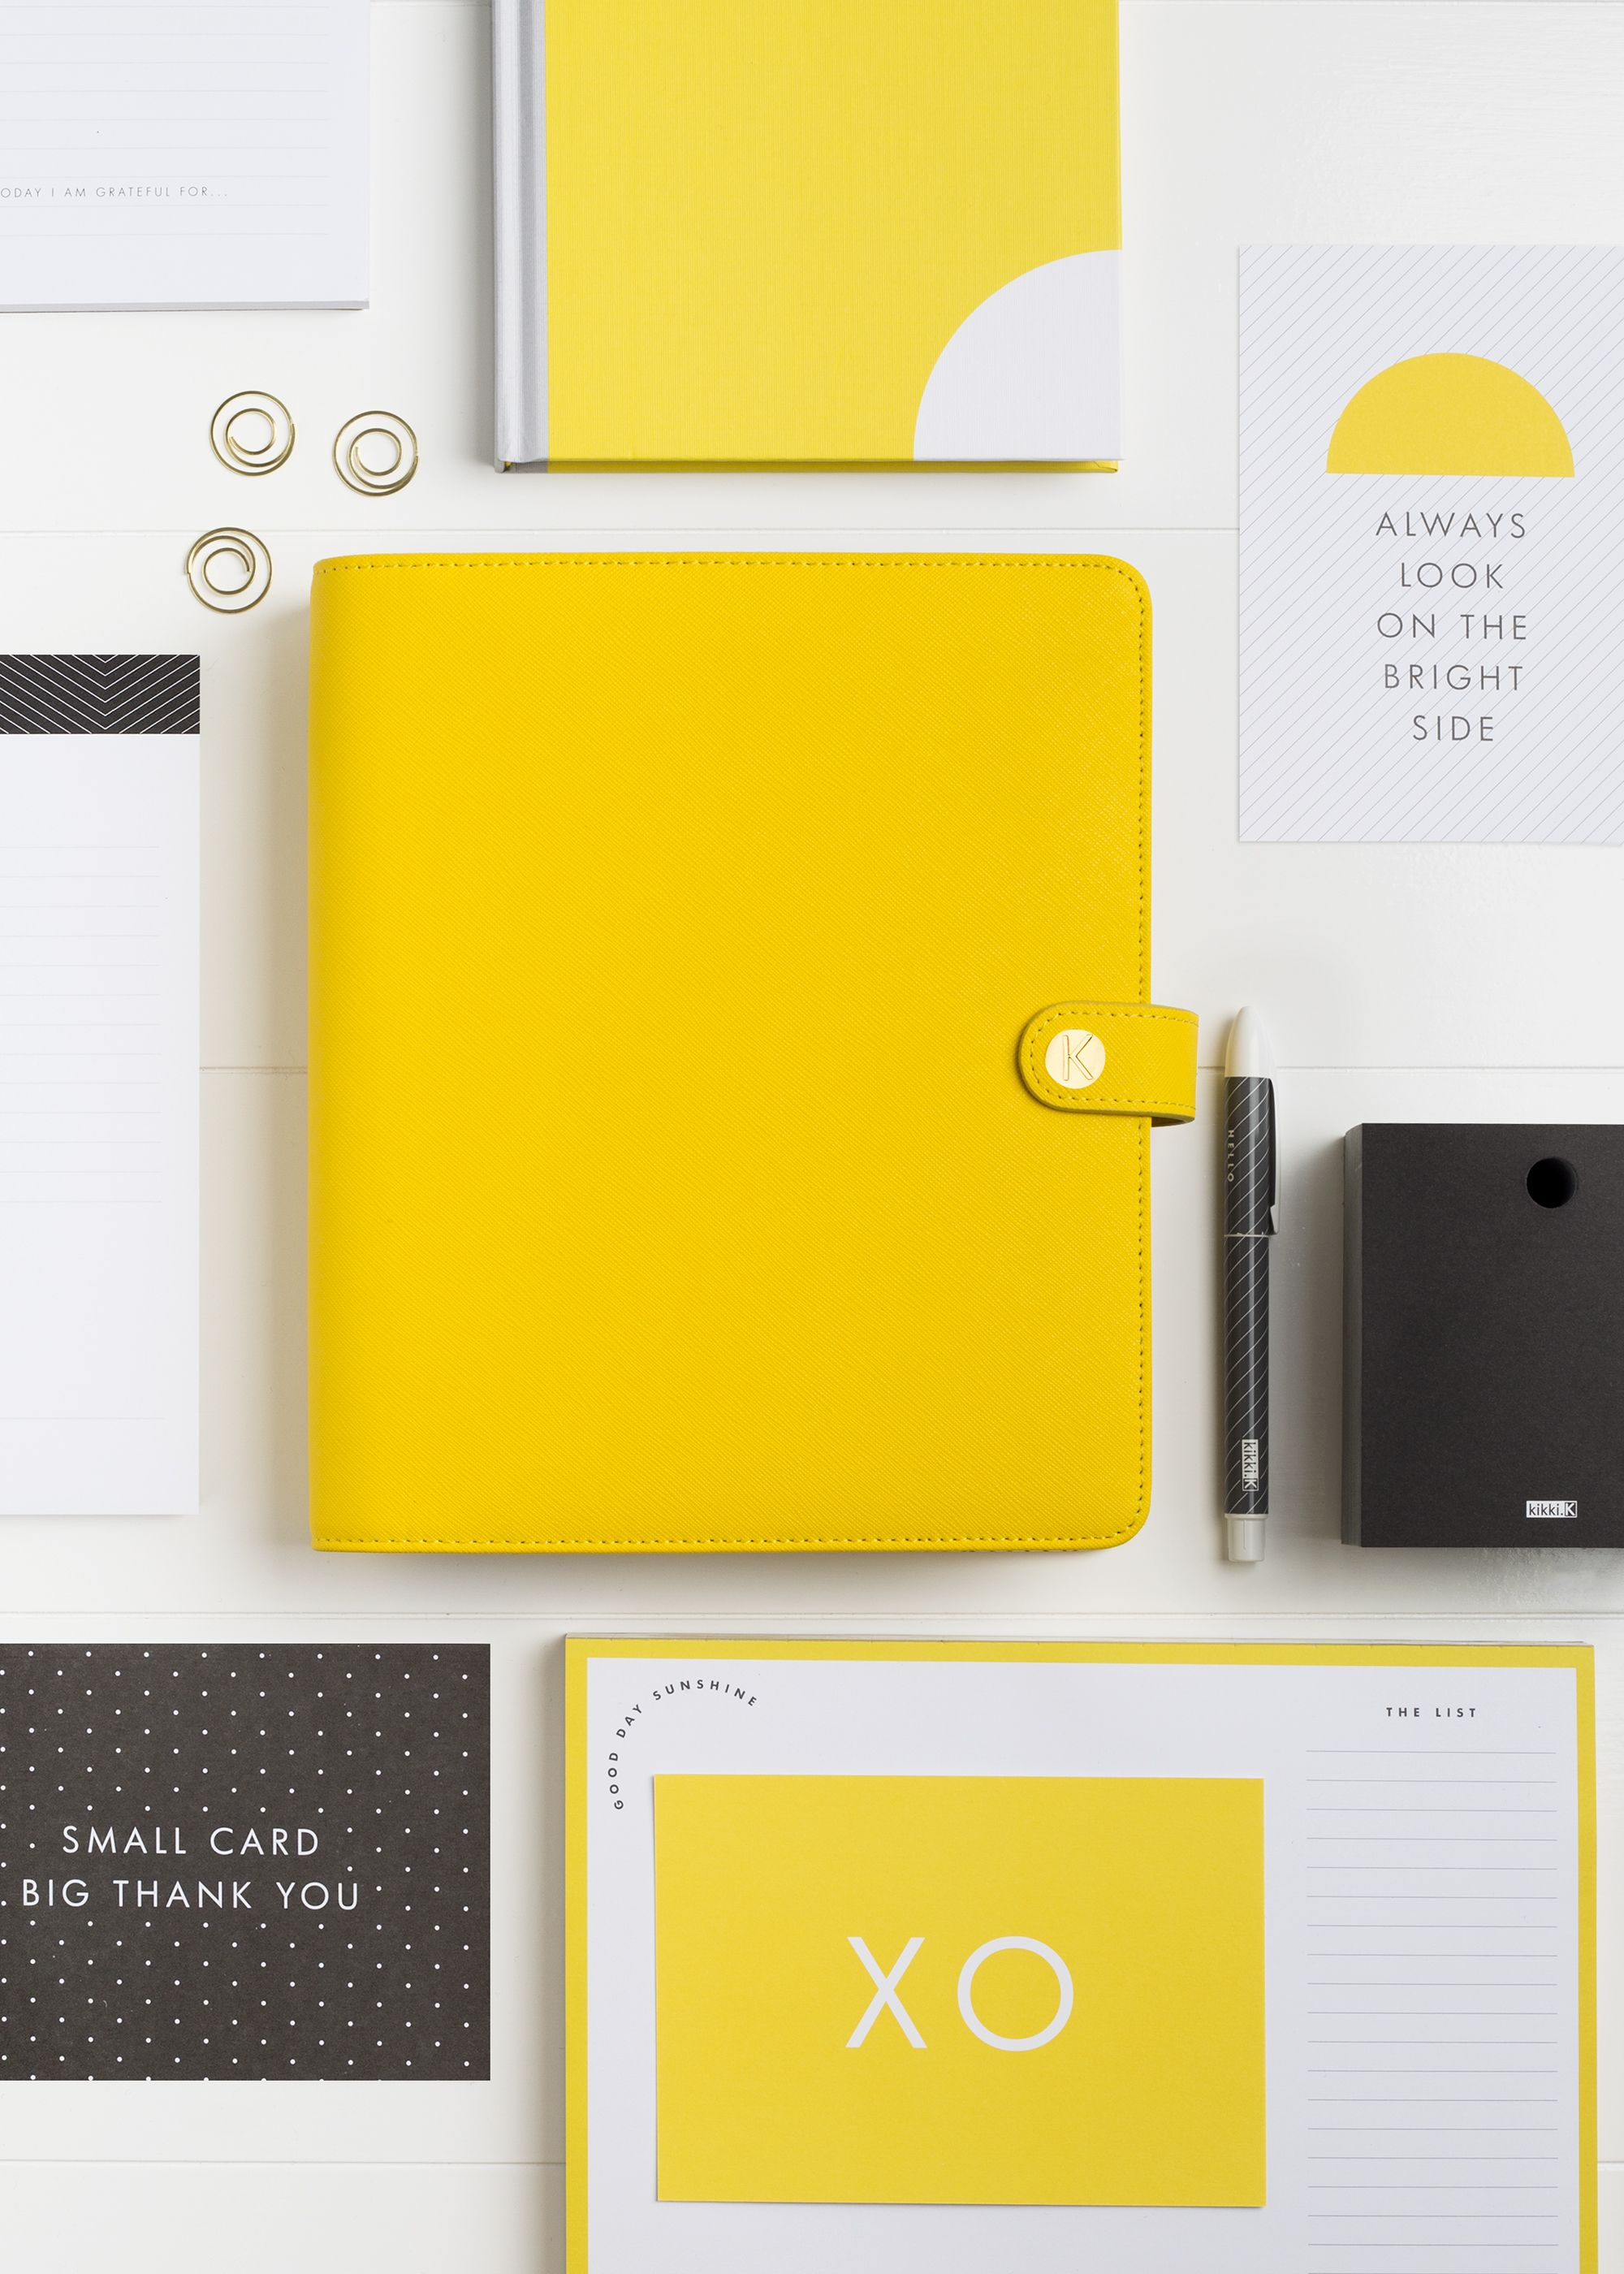 Look on the bright side with this kikkik yellow personal planner